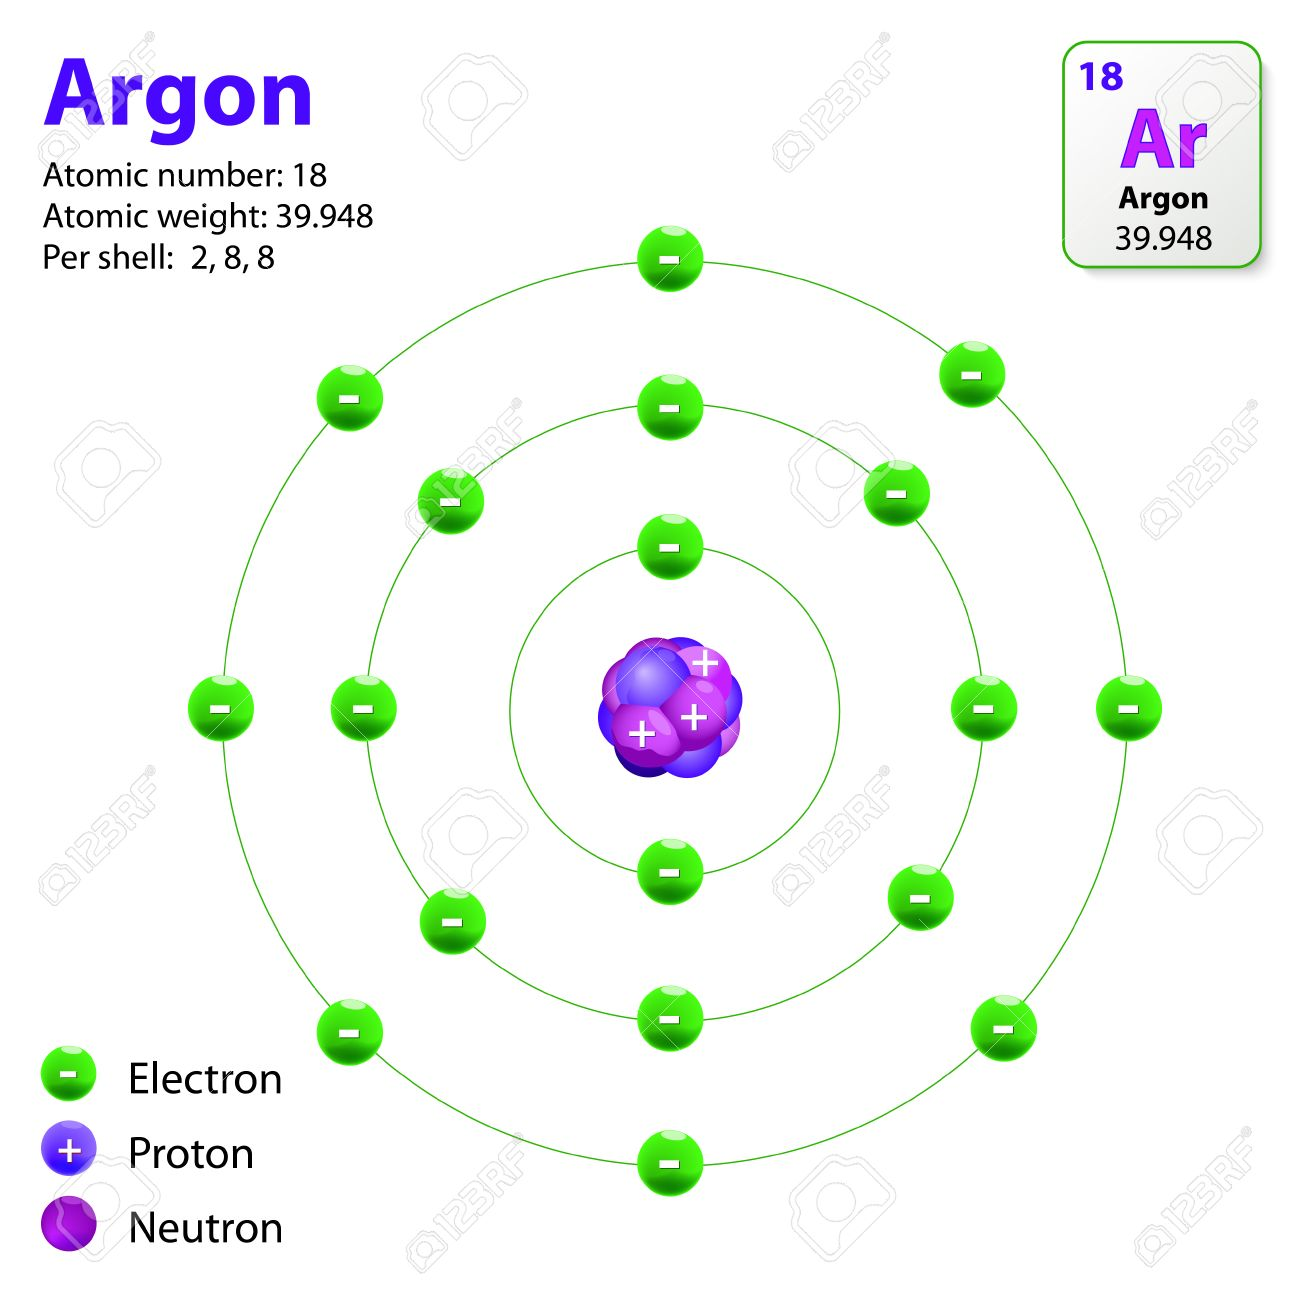 Atom argon this diagram shows the electron shell configuration atom argon this diagram shows the electron shell configuration for the argon atom stock vector pooptronica Images